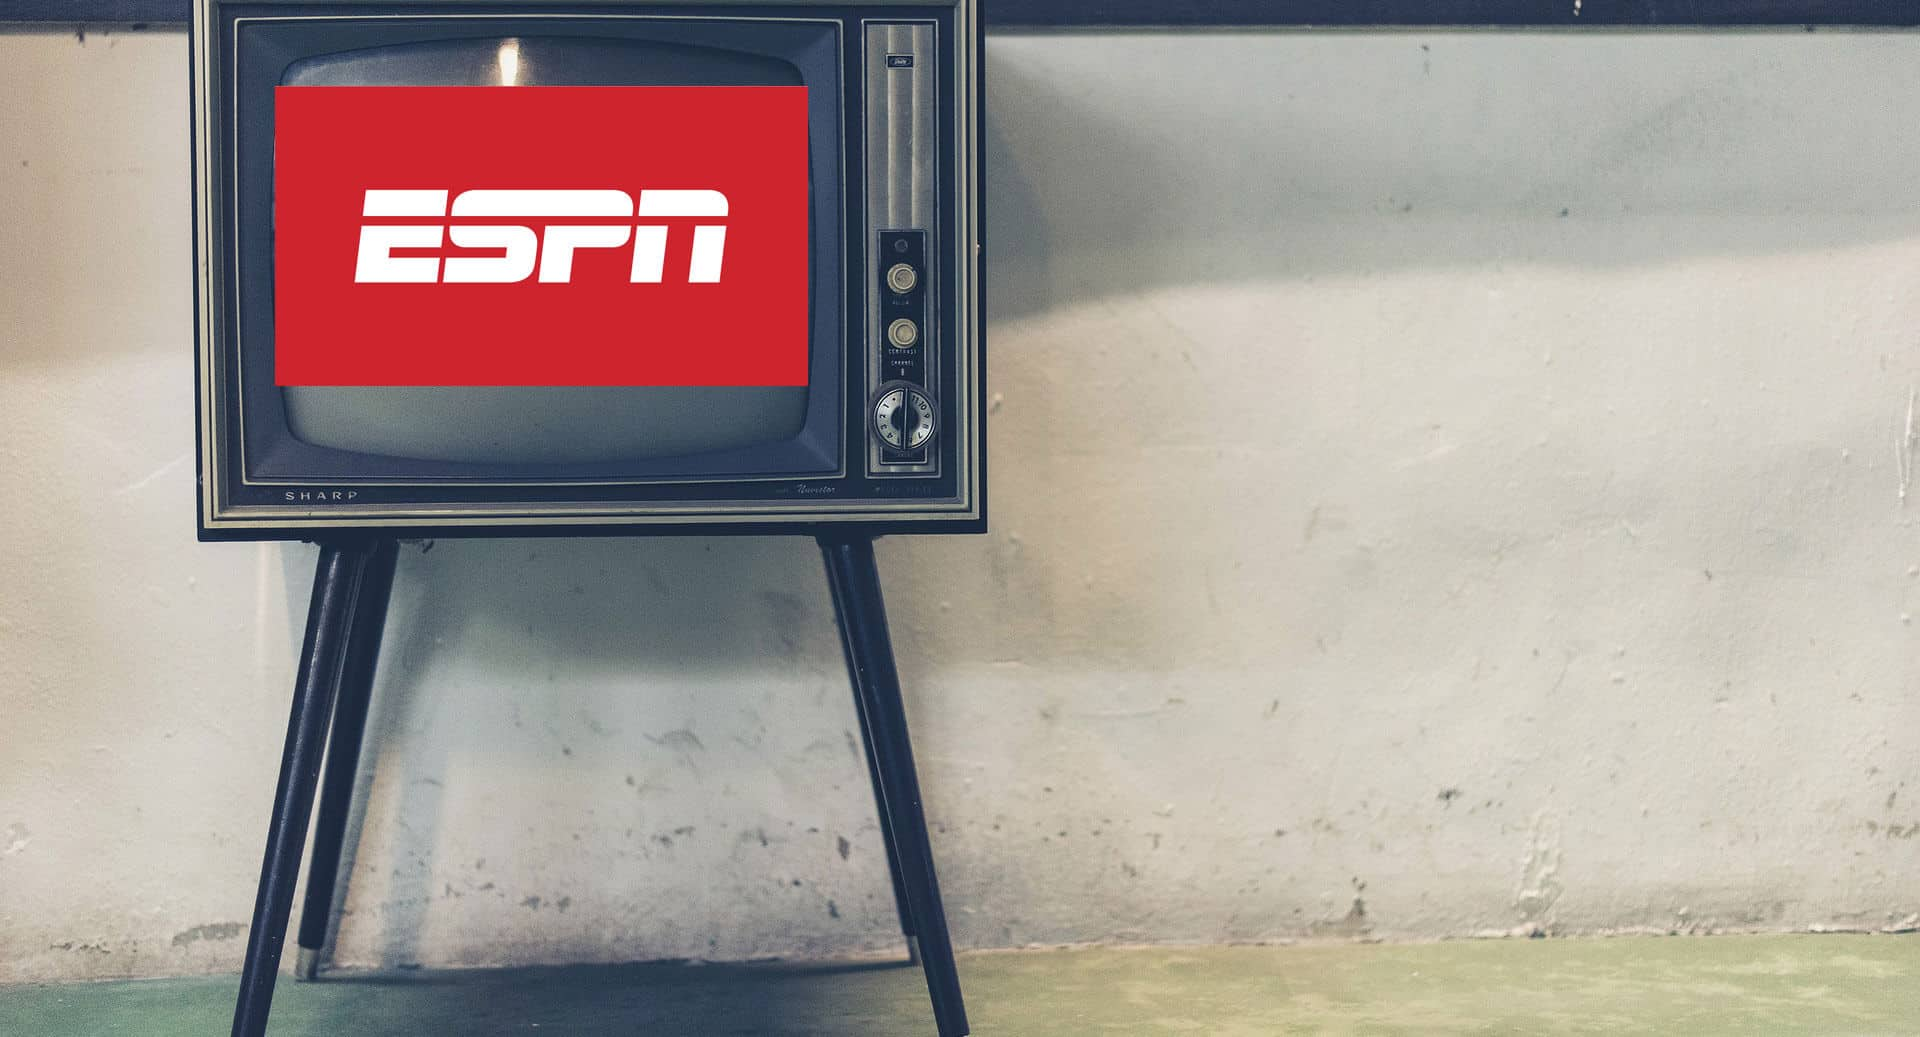 5 different ways to watch ESPN live on any device using Kodi